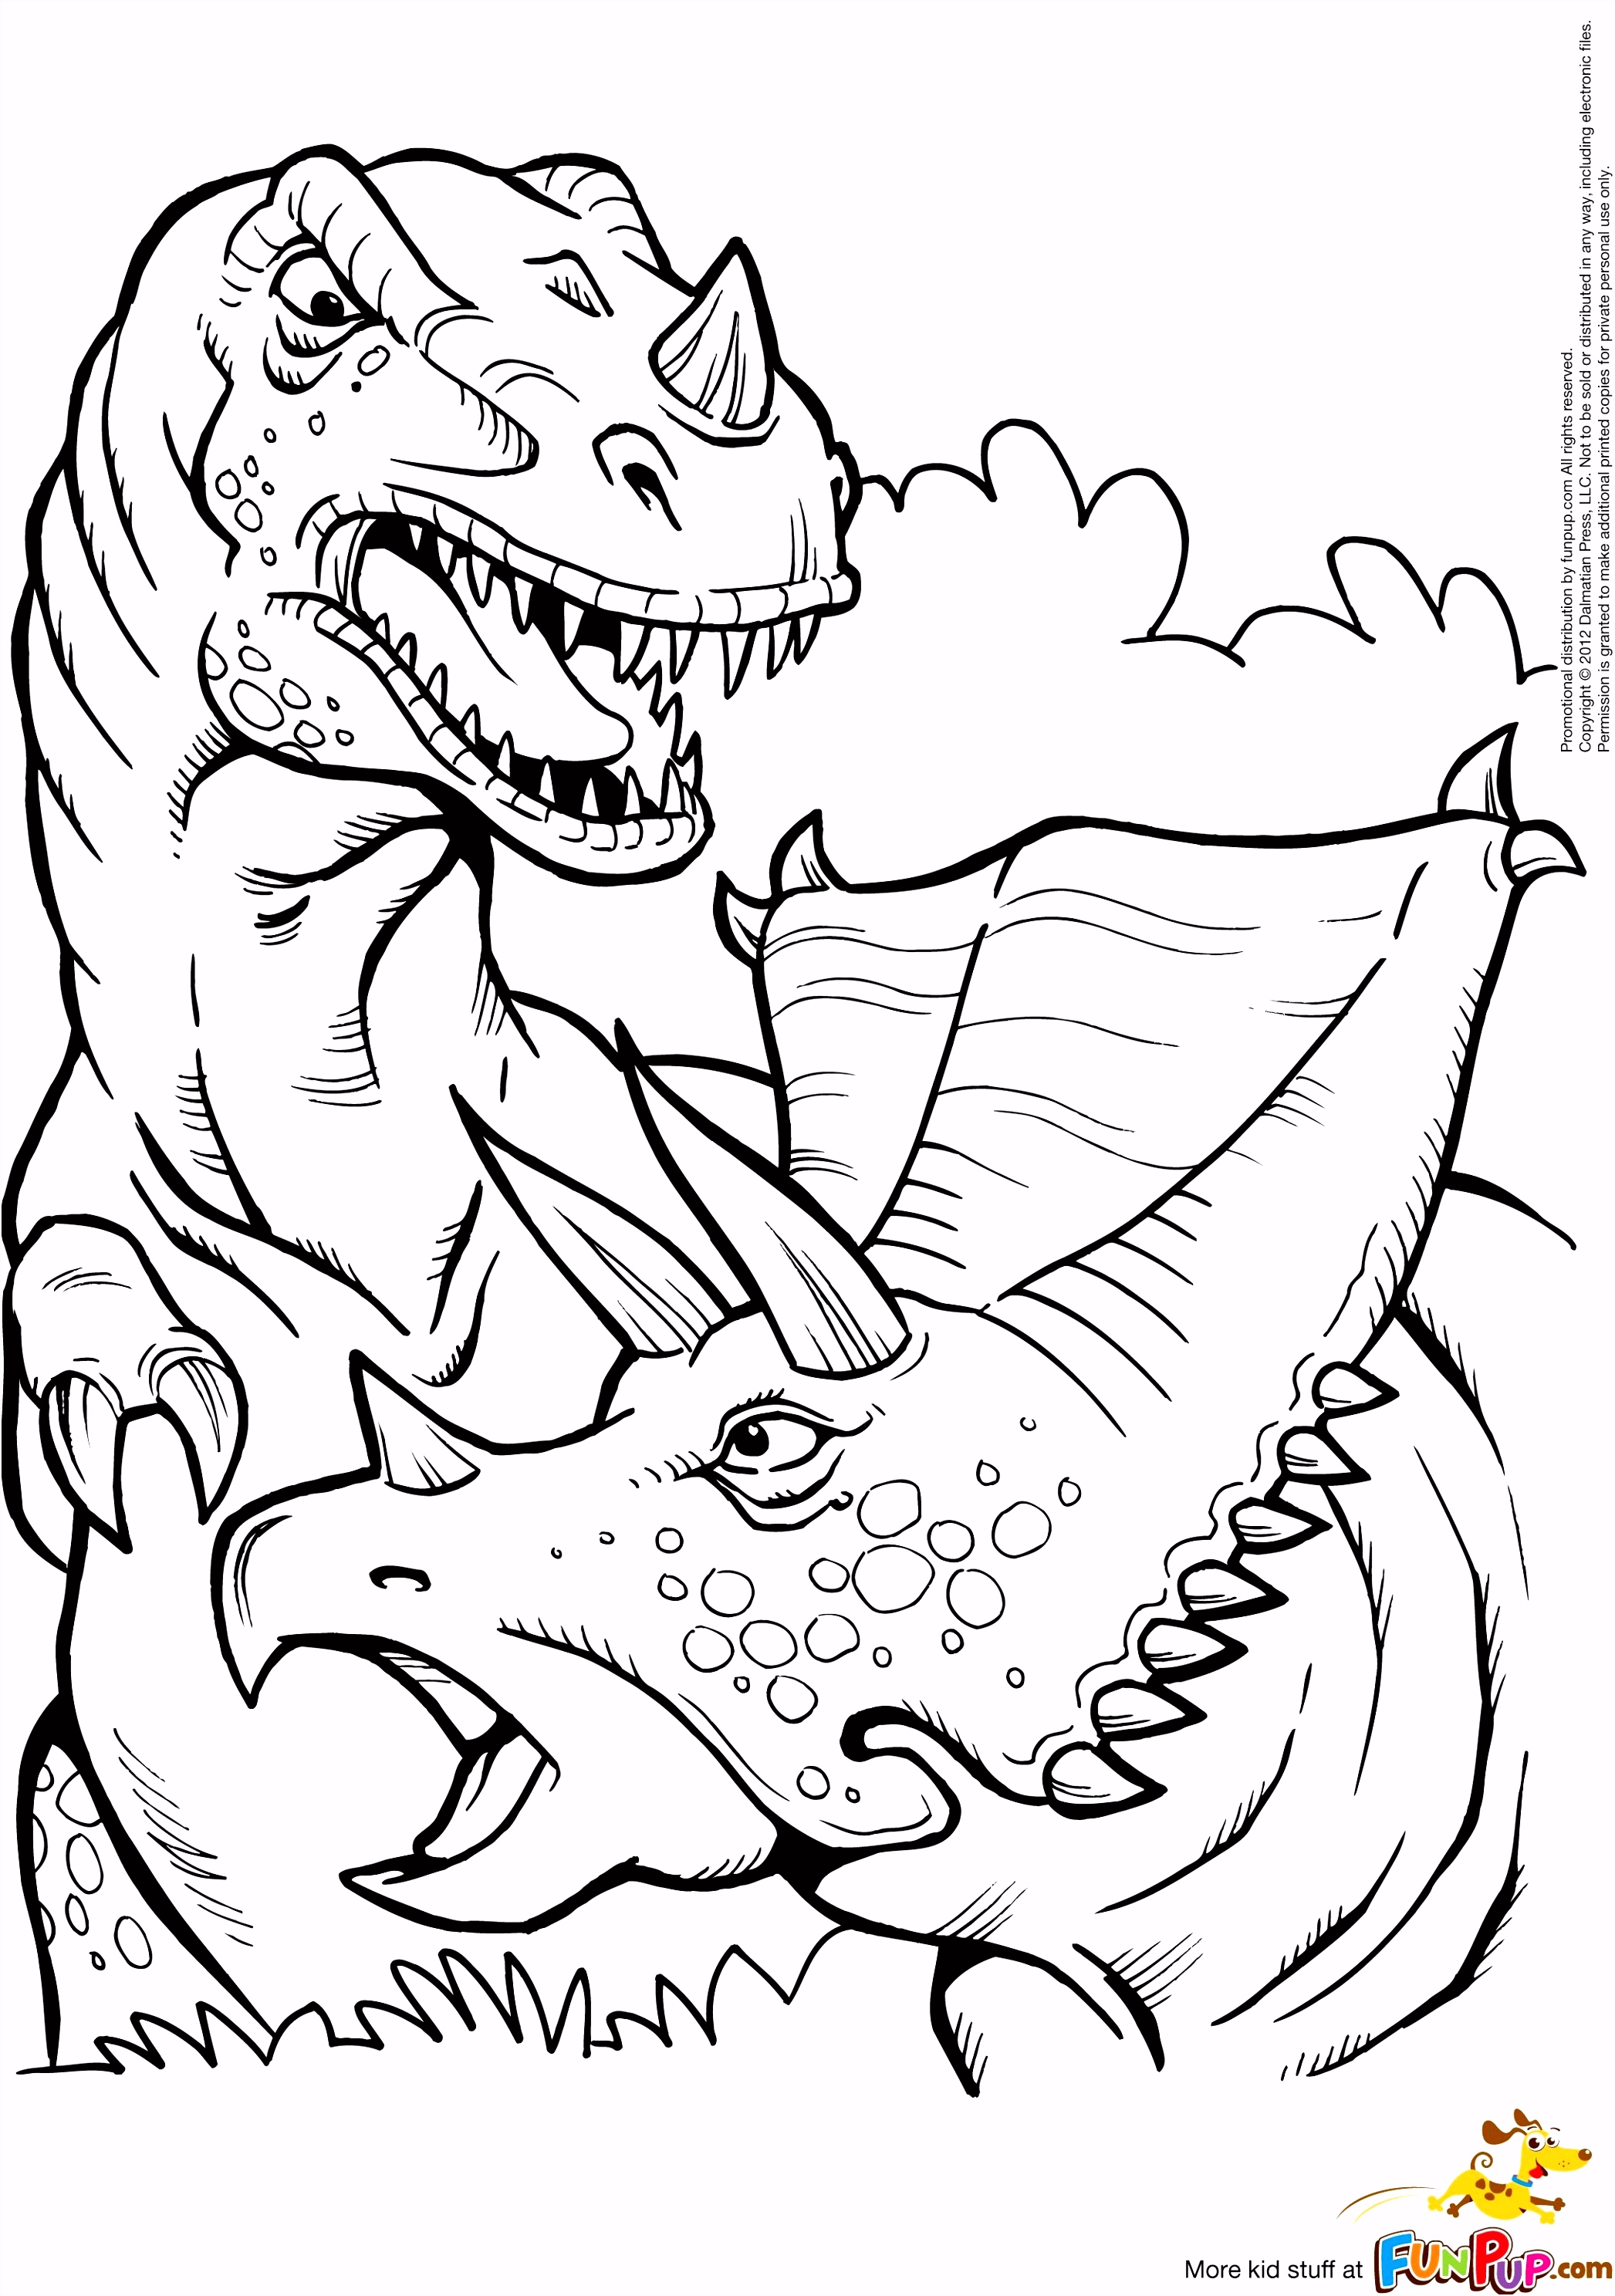 Kleurplaten Ultimate Spiderman Kleurplaat Printable T Rex and Triceratops Coloring Page C2qd15eam4 A6yk4sktss